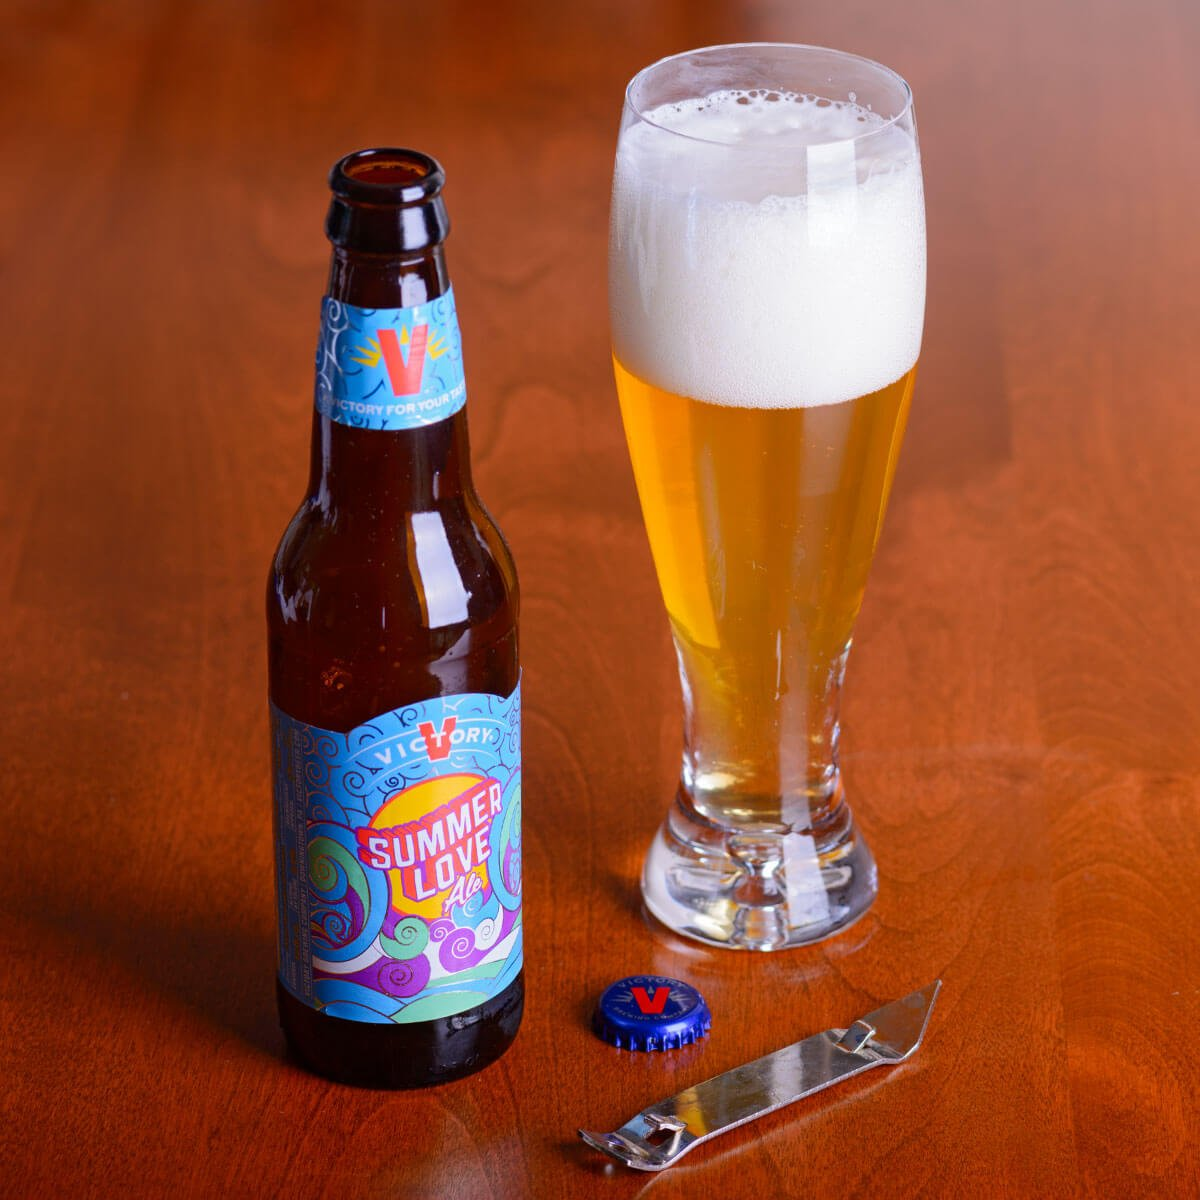 Summer Love Ale, an American Blonde Ale by Victory Brewing Company